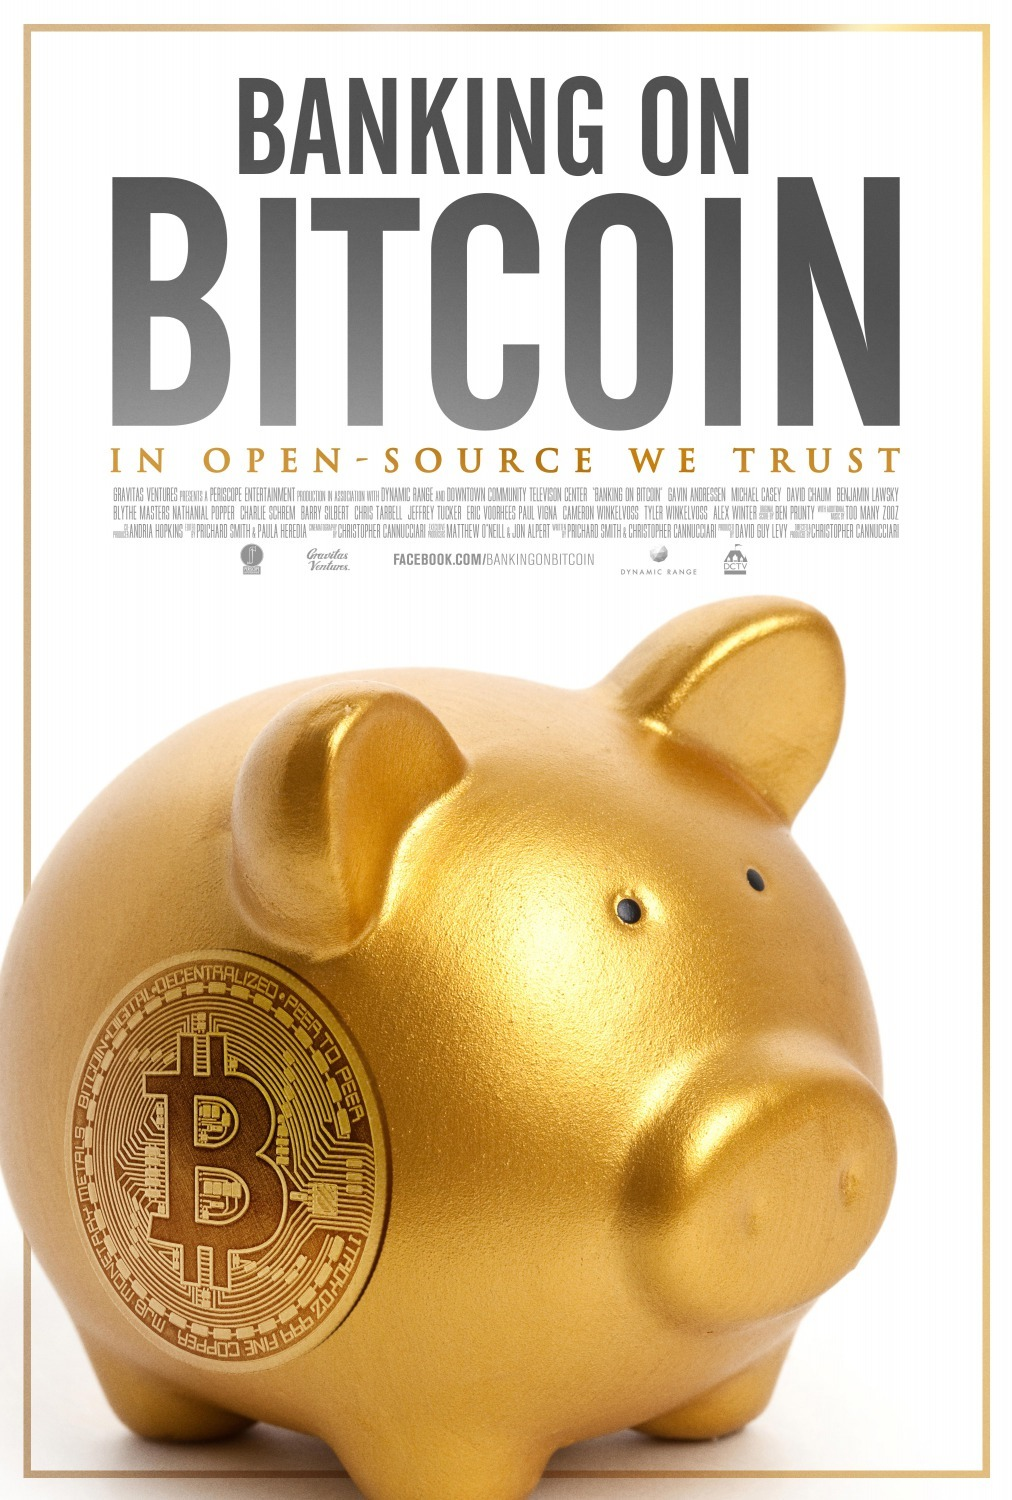 Banking on Bitcoin Movie at Best Stock Market movies article - Arable Life